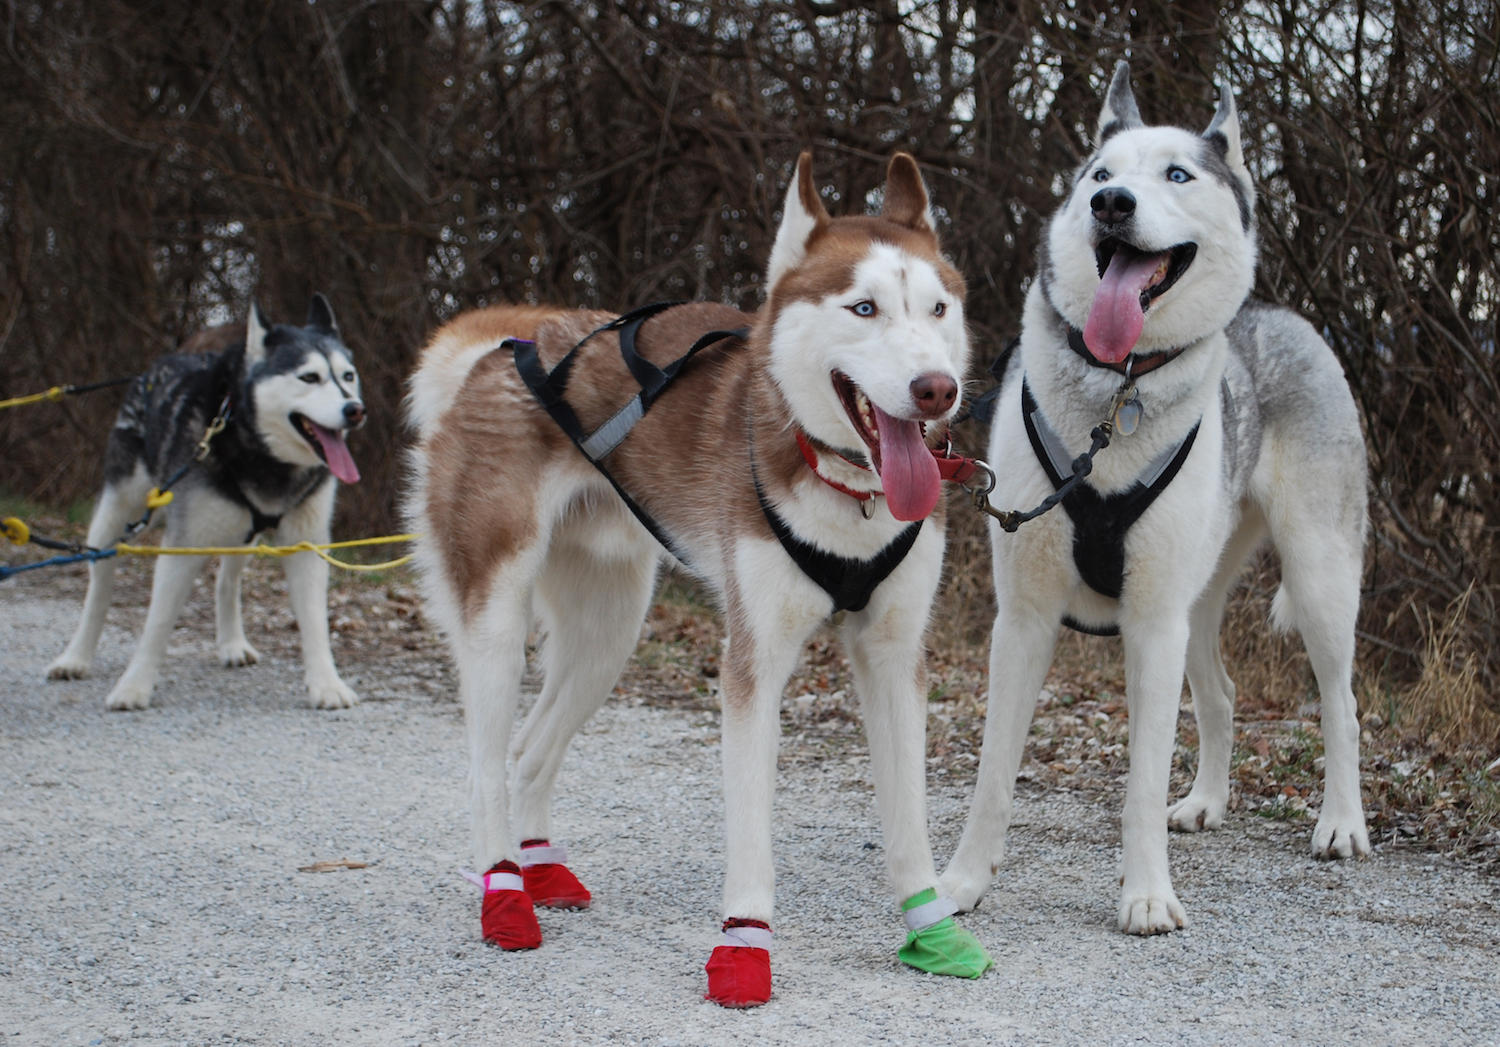 Unlikely tale: Meet the rescued huskies who practice for ...